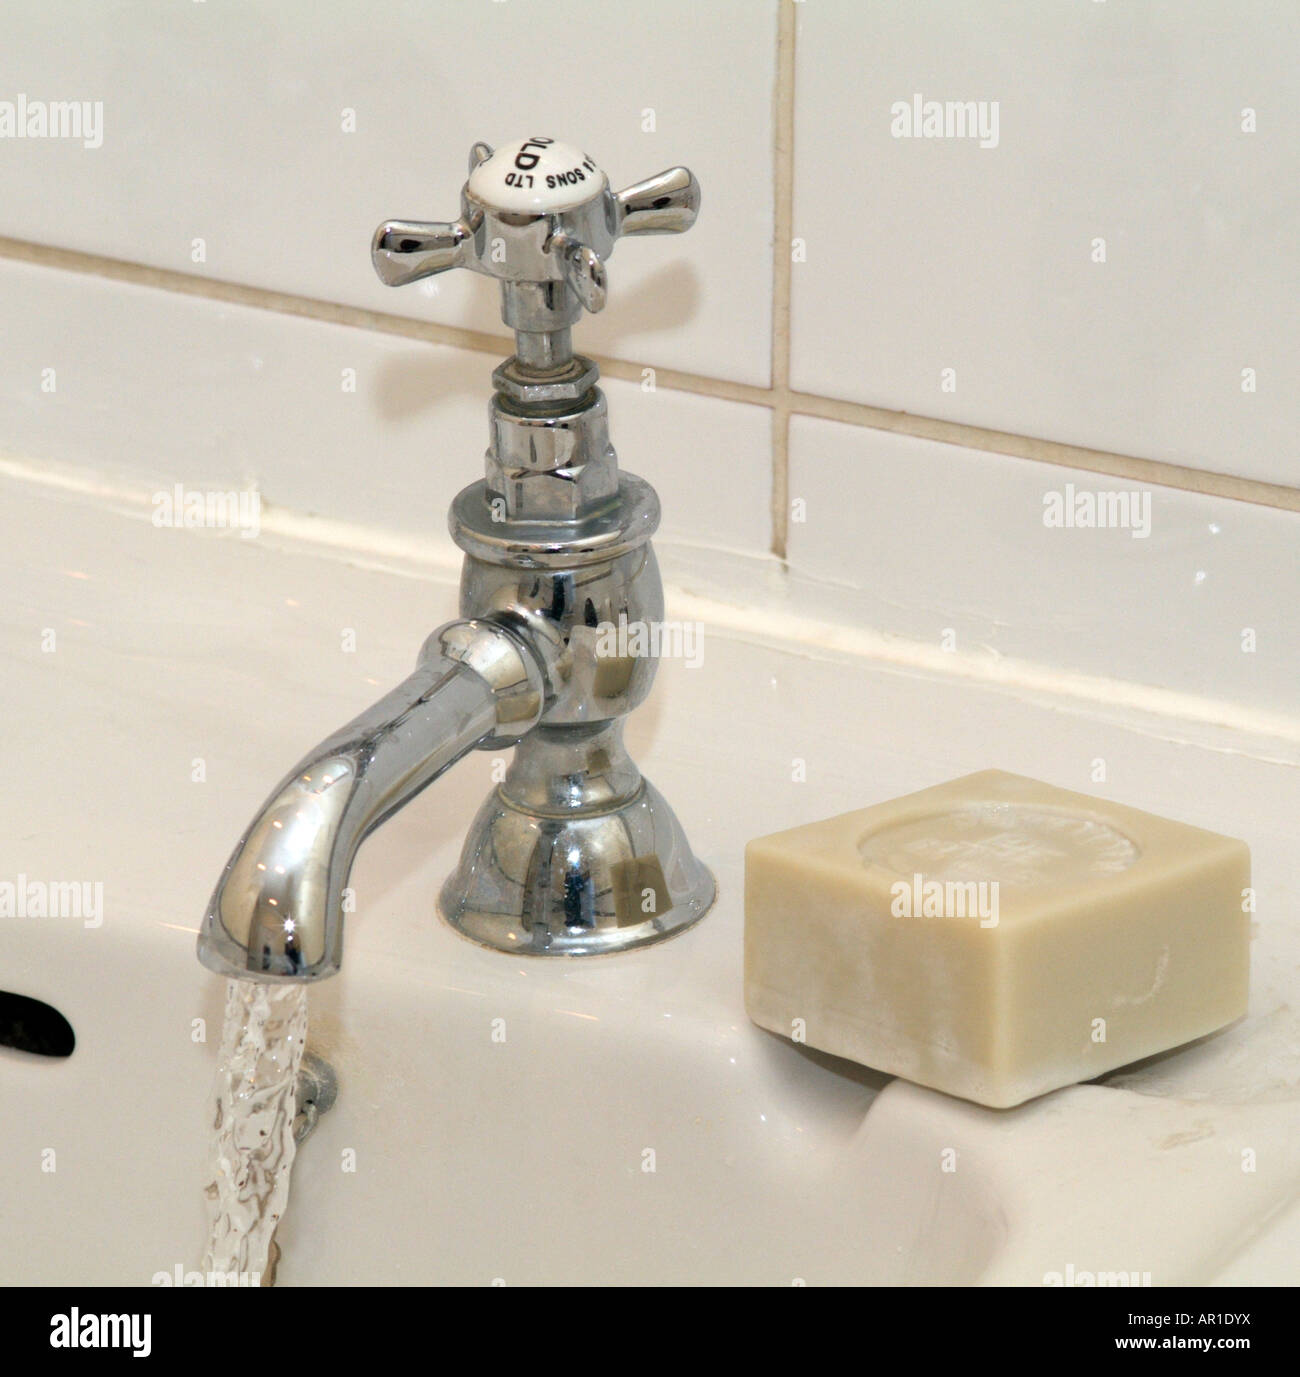 Cold Water Tap Soap and Running Water Stock Photo: 15907357 - Alamy